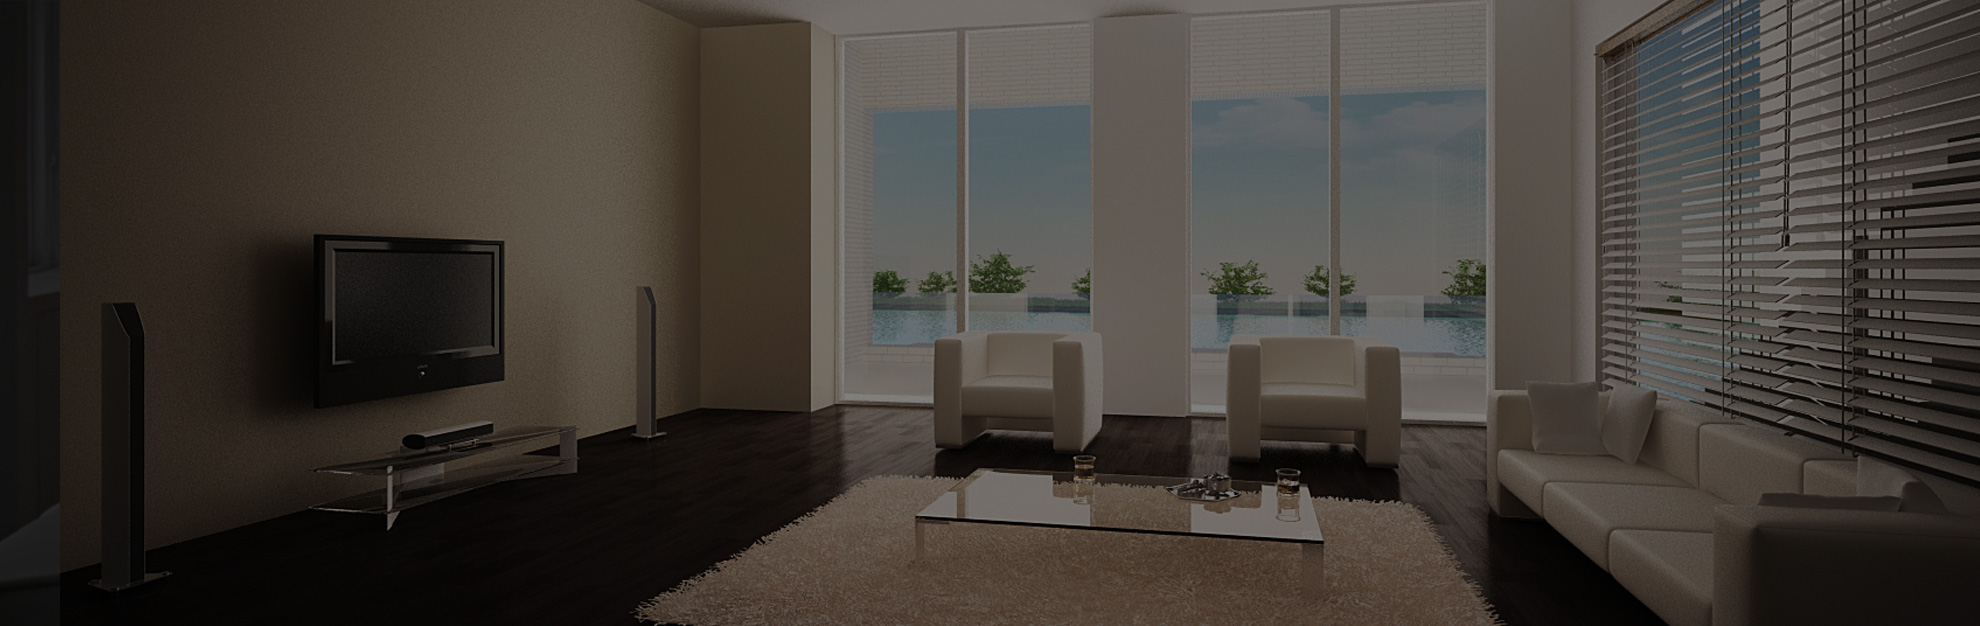 interiordesign_header